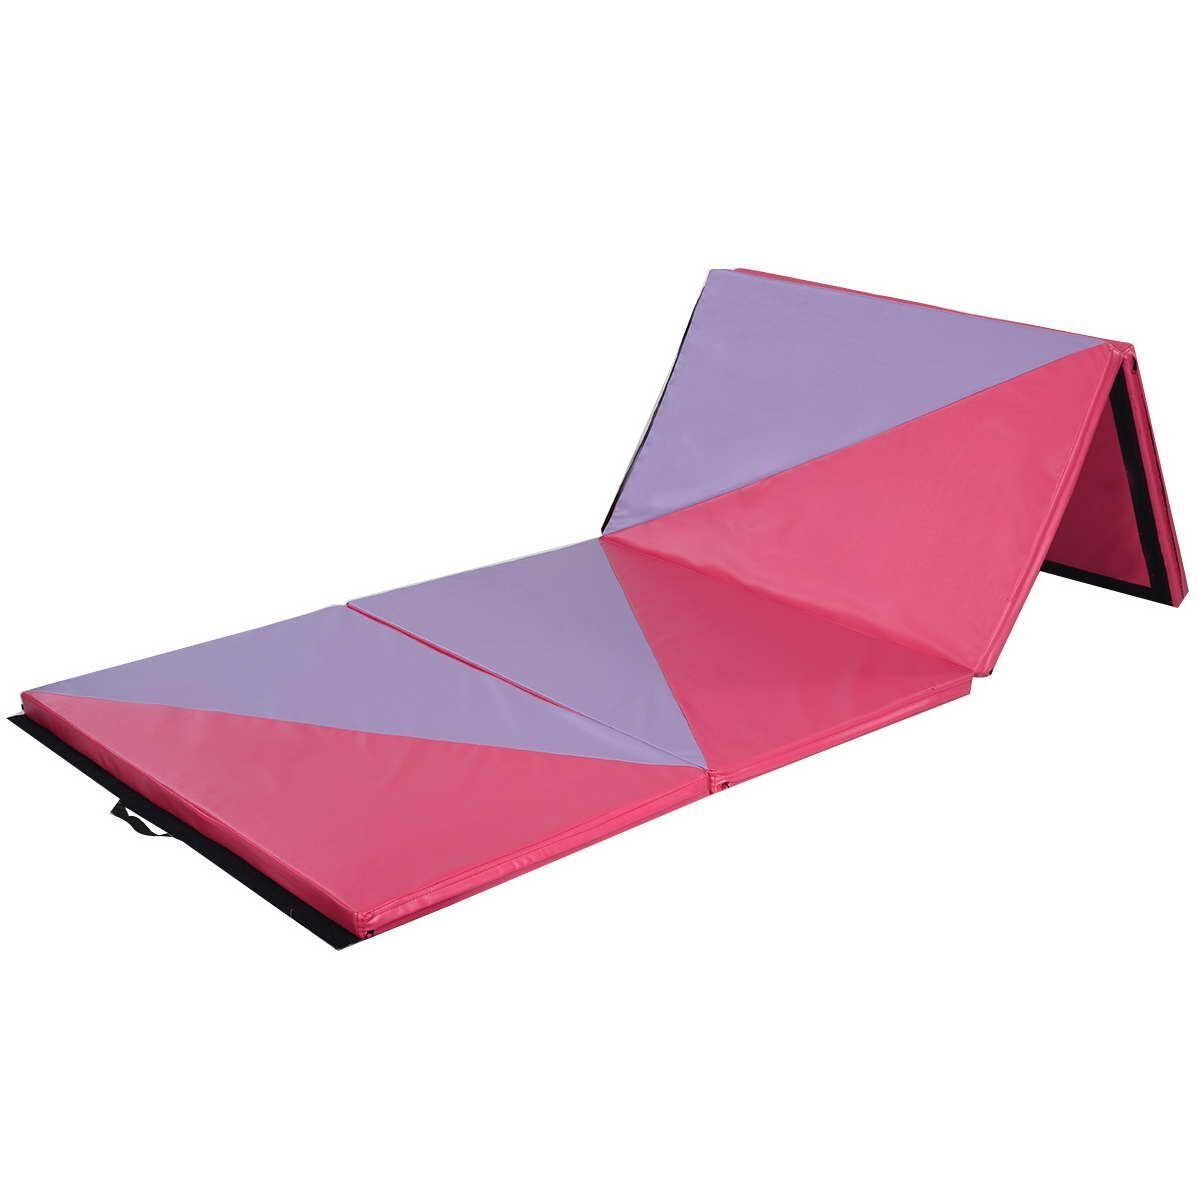 guide top yipuieq folding soozier gymnastic leather gymnastics complete mat for home best review mats tumbling pu